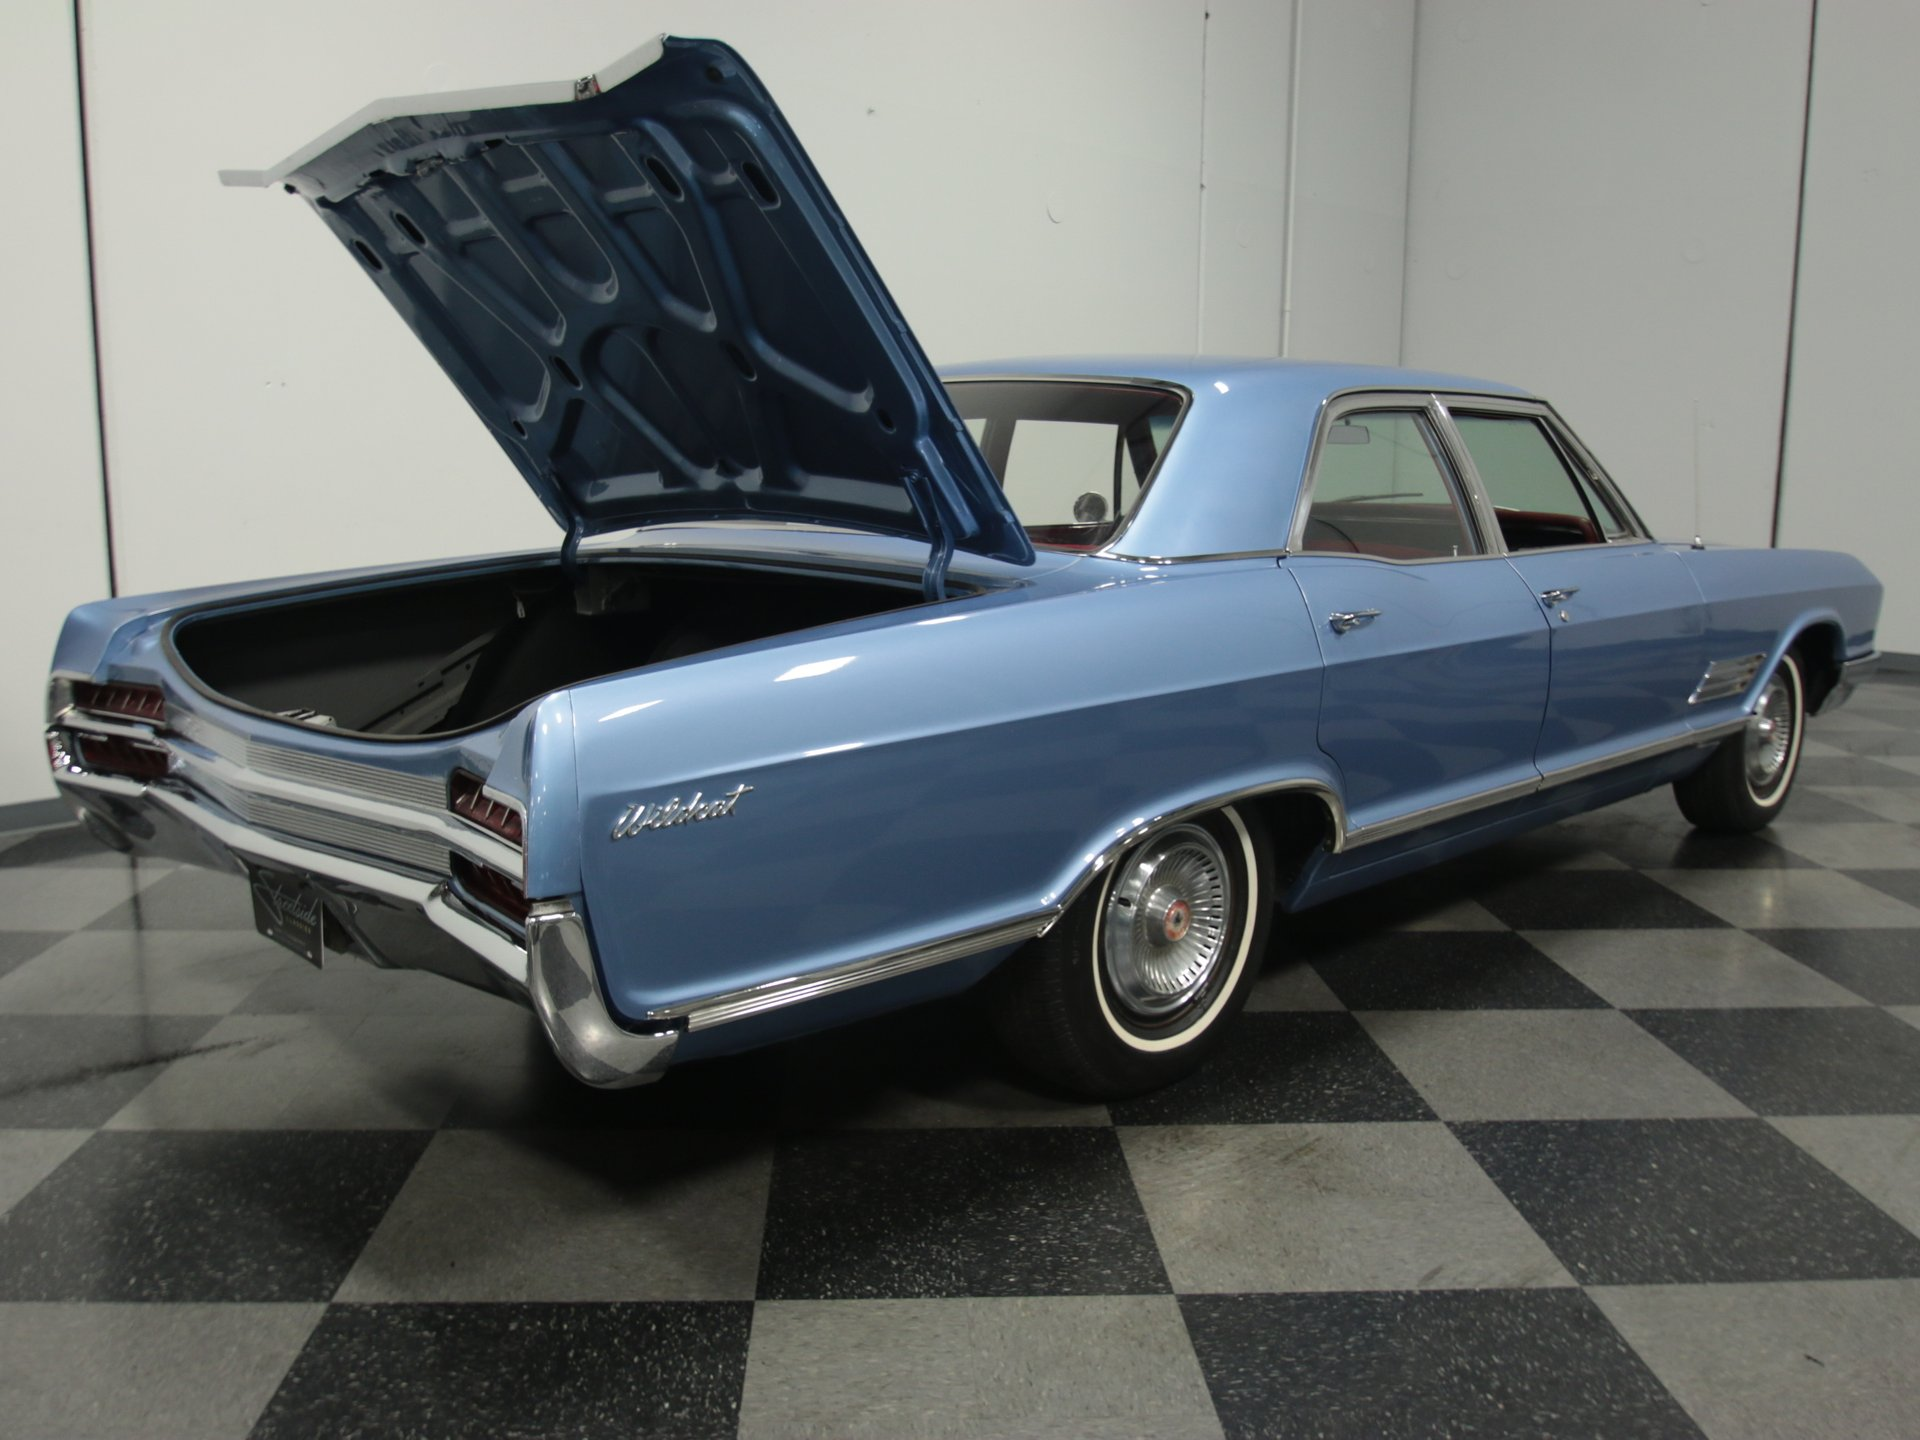 1966 Buick Wildcat | Streetside Classics - The Nation's